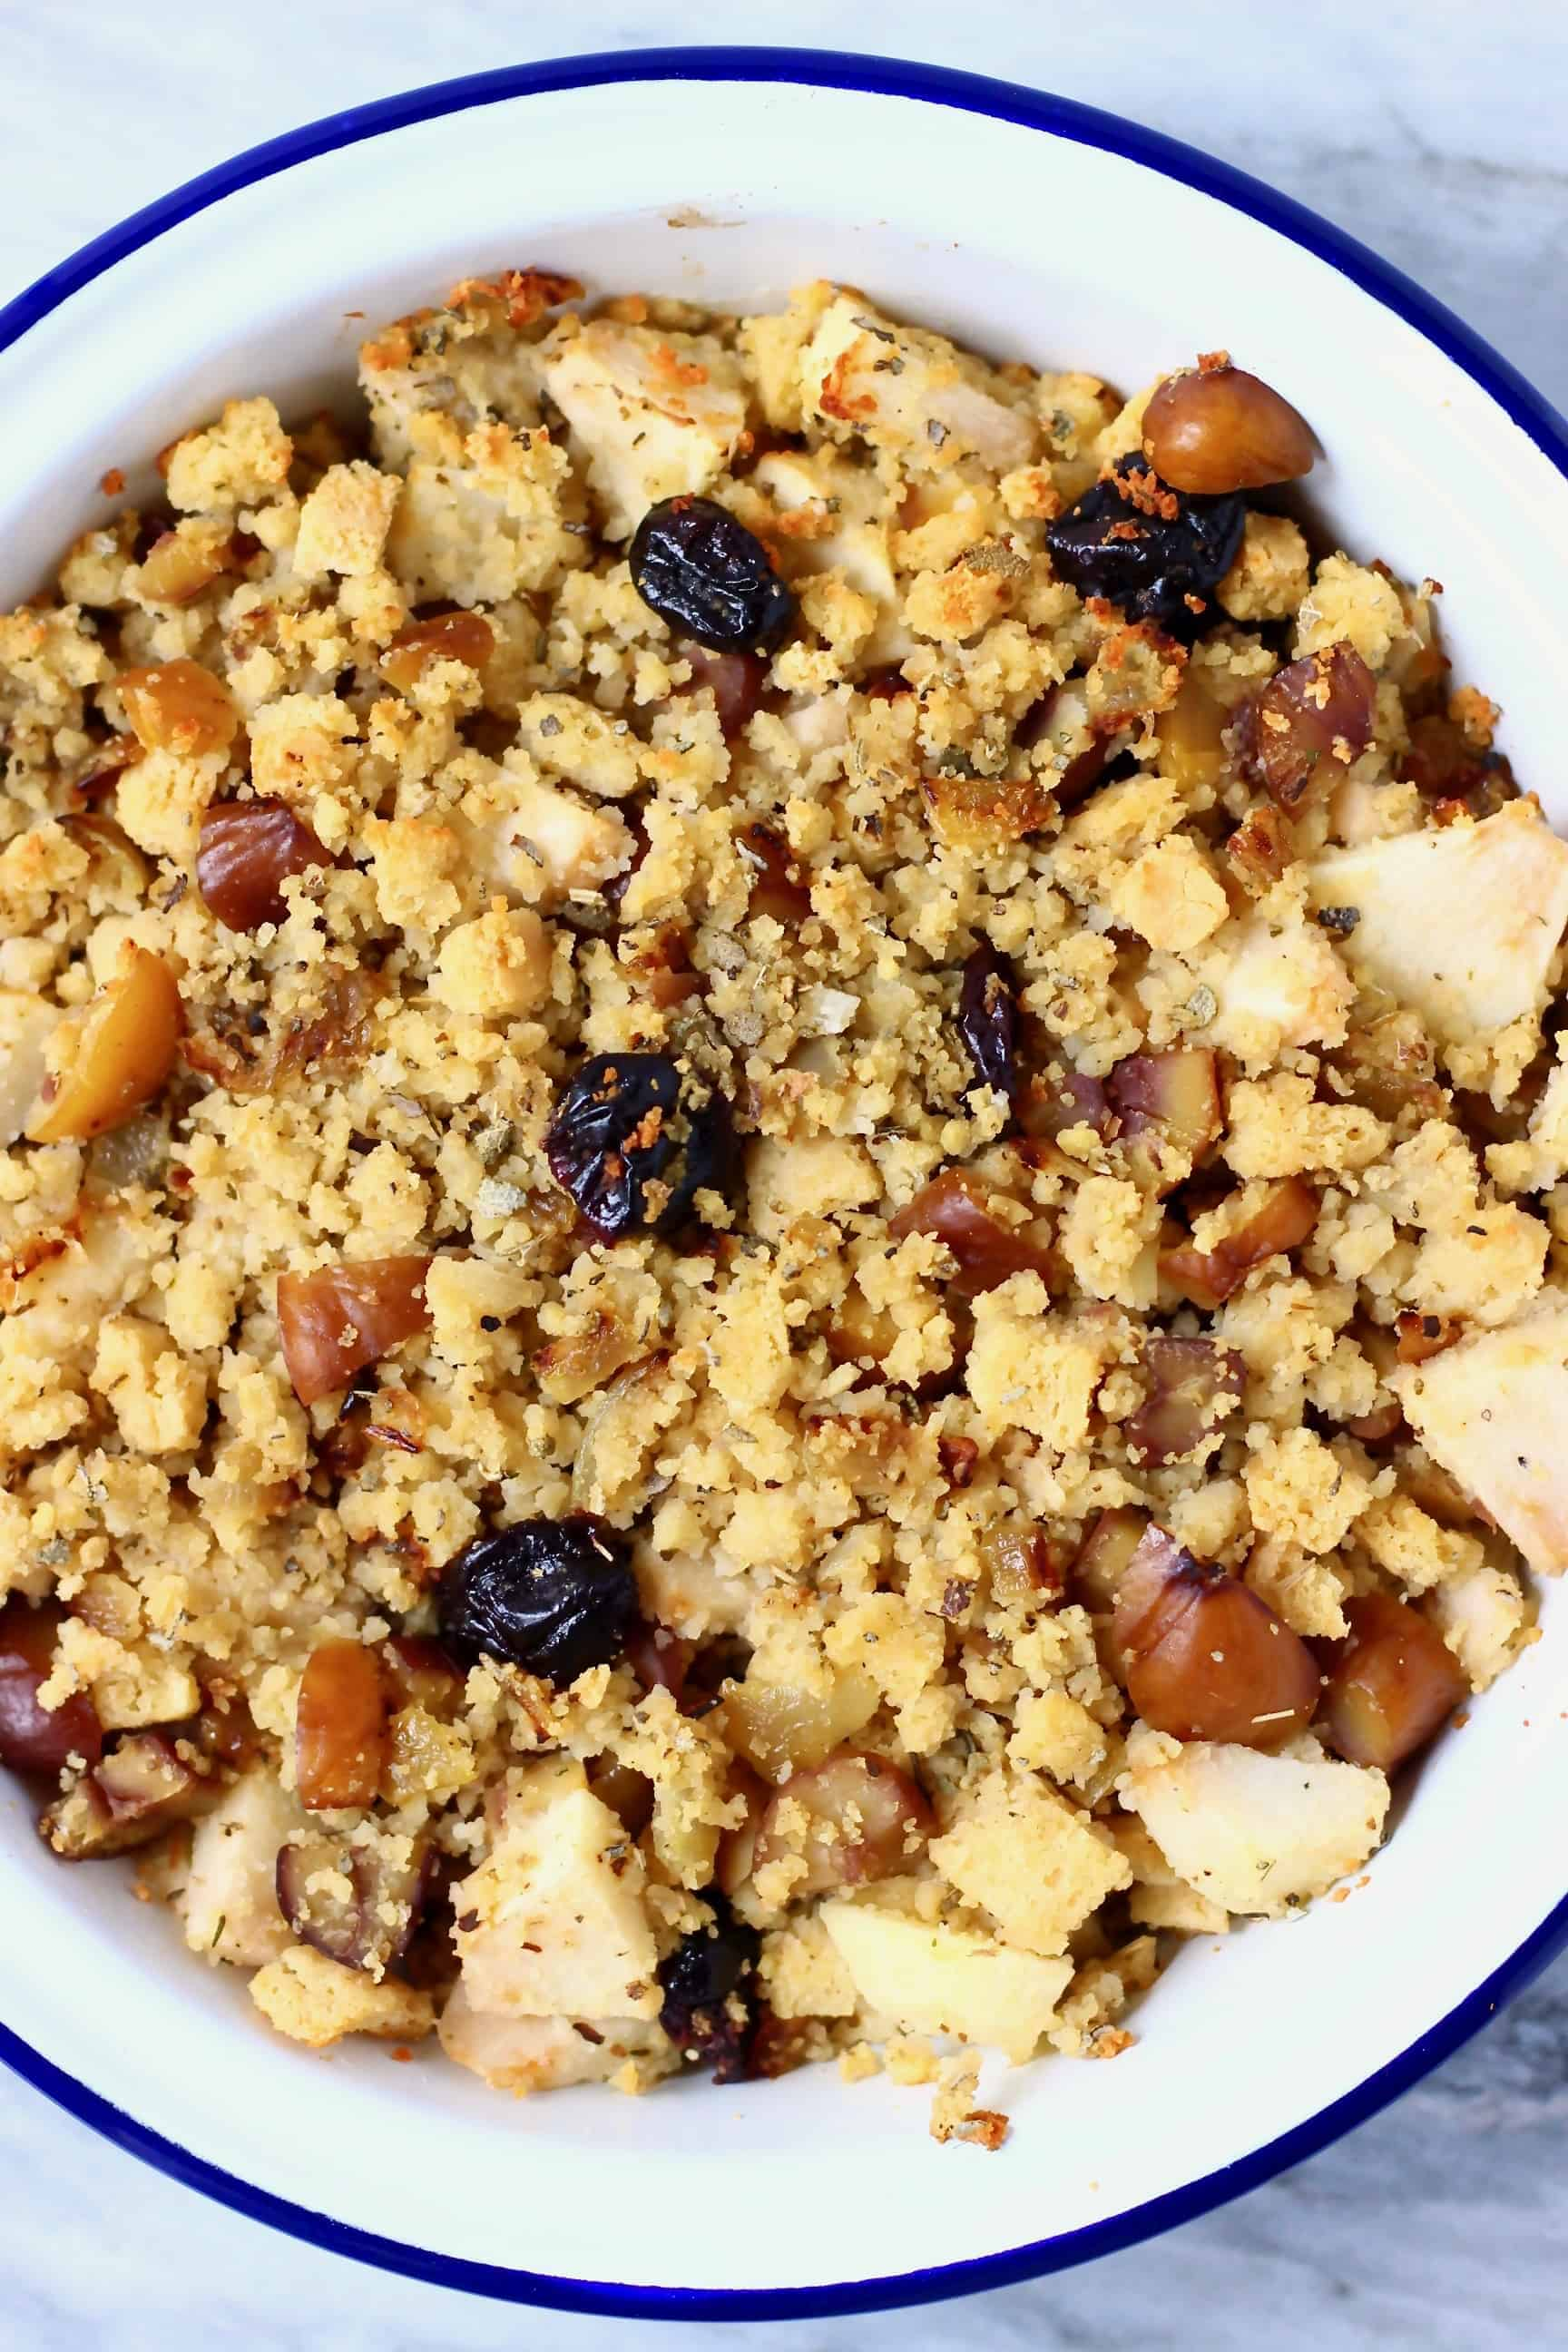 Diced apple, dried cherries, dried sage, chopped chestnuts, breadcrumbs and diced fried onion mixed together in a white pie dish with a blue rim